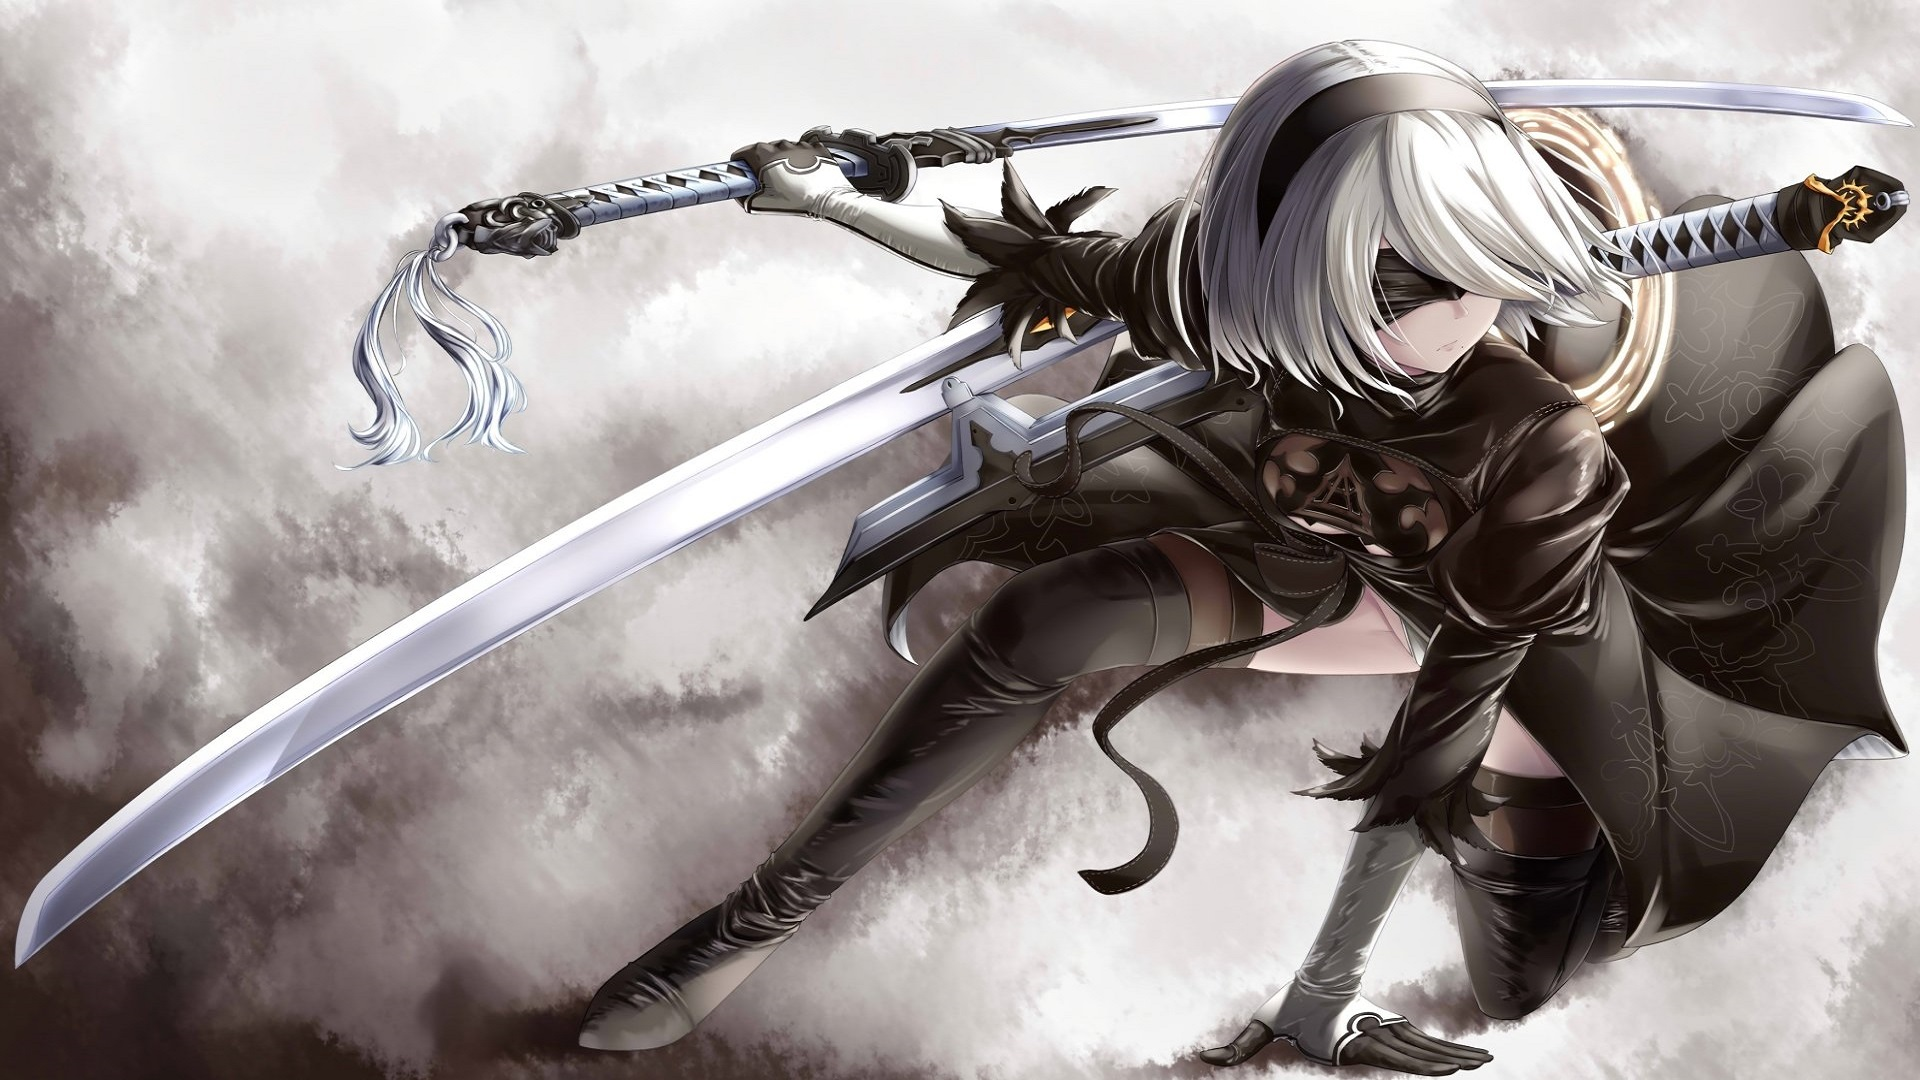 Hd wallpaper nier automata - Nier Automata Hd Wallpaper